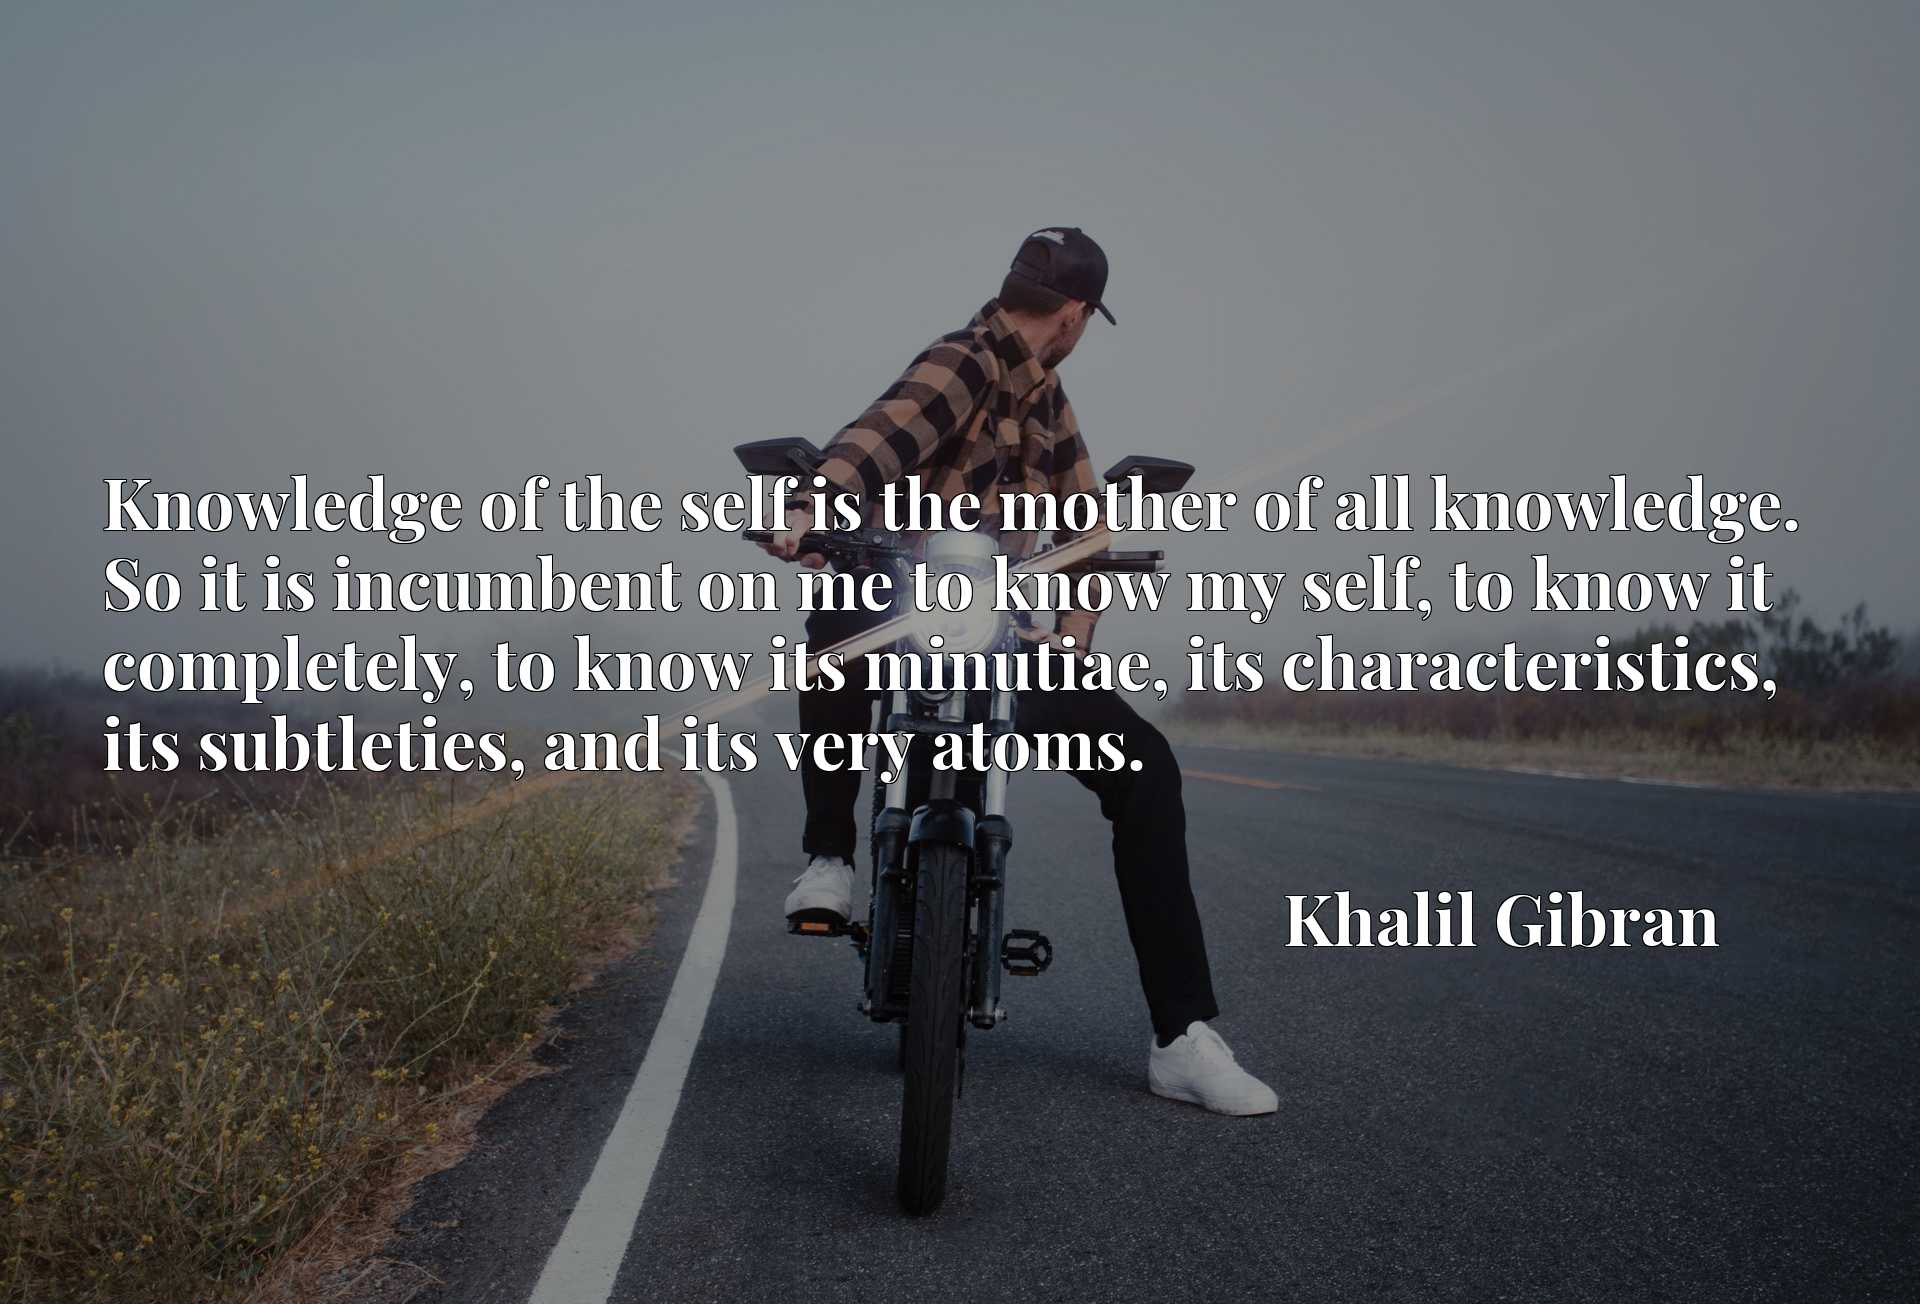 Knowledge of the self is the mother of all knowledge. So it is incumbent on me to know my self, to know it completely, to know its minutiae, its characteristics, its subtleties, and its very atoms.